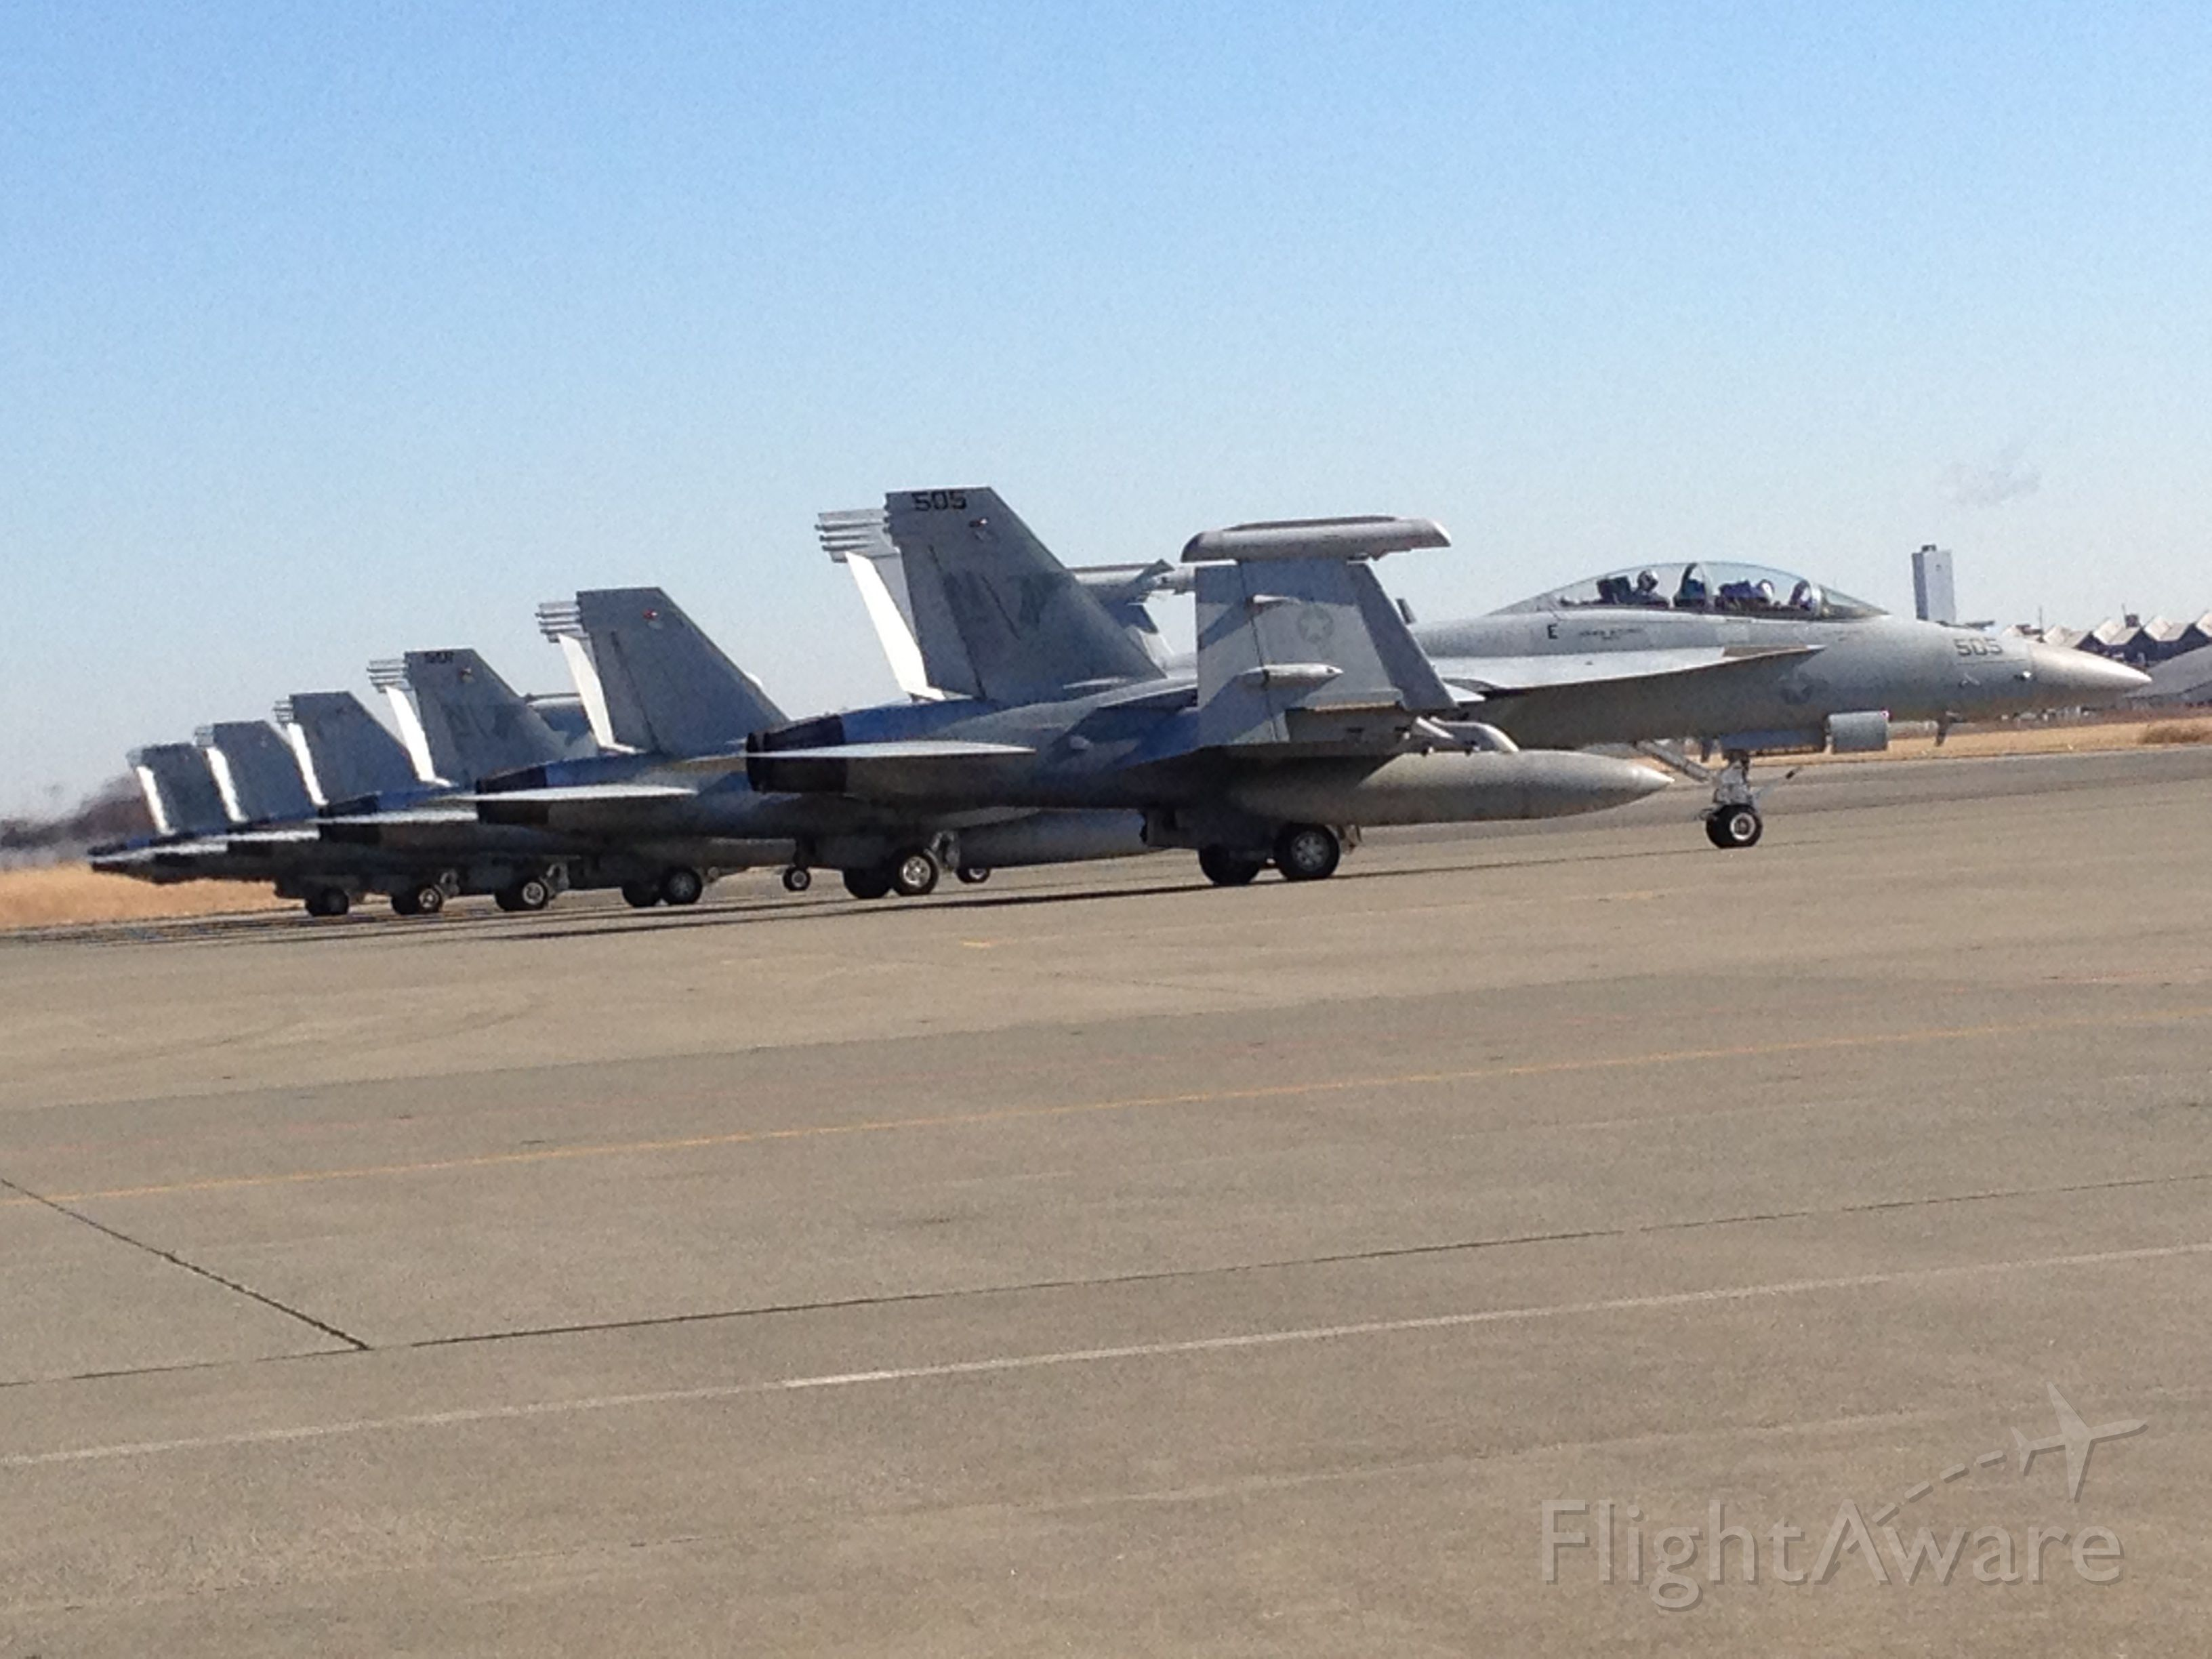 — — - F-18s with engines on waiting for everyone to ready up for takeoff in Atsugi Japan